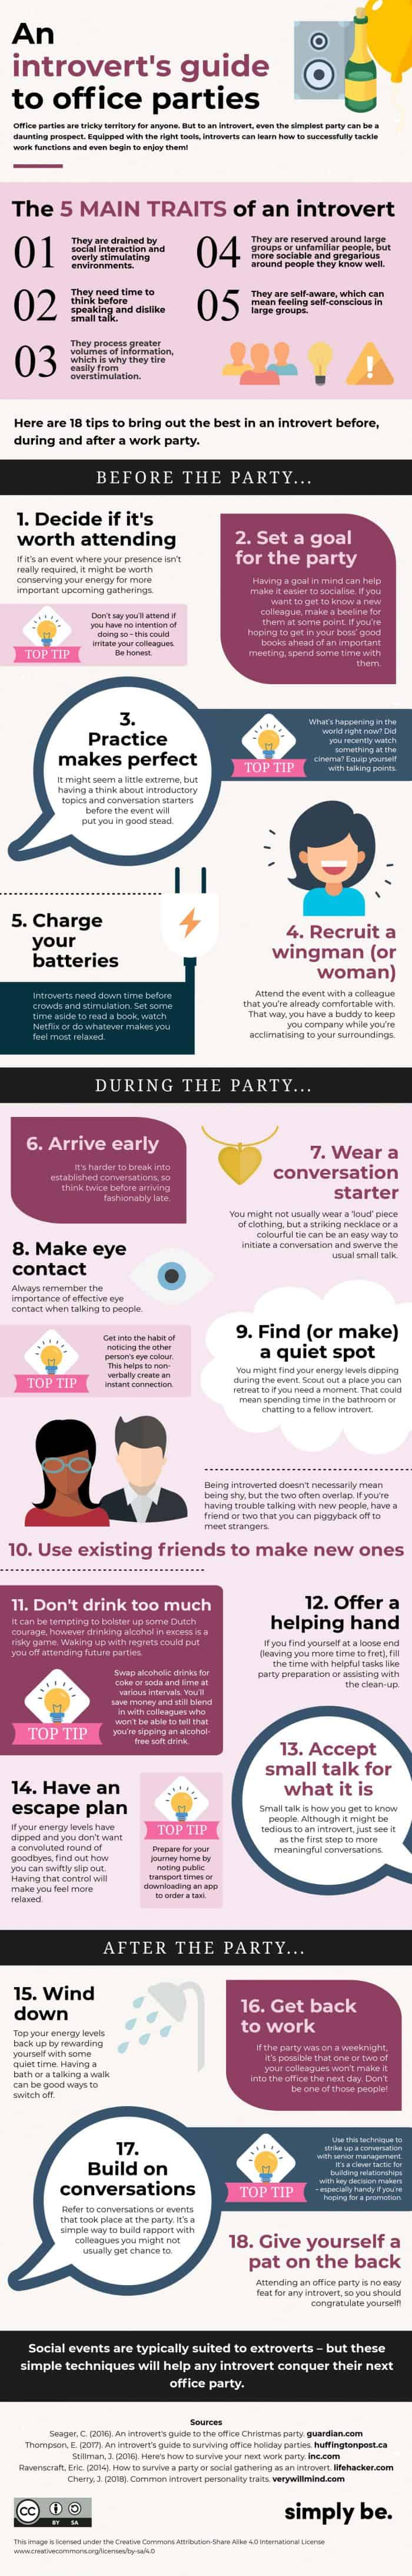 Introvert guide to office parties